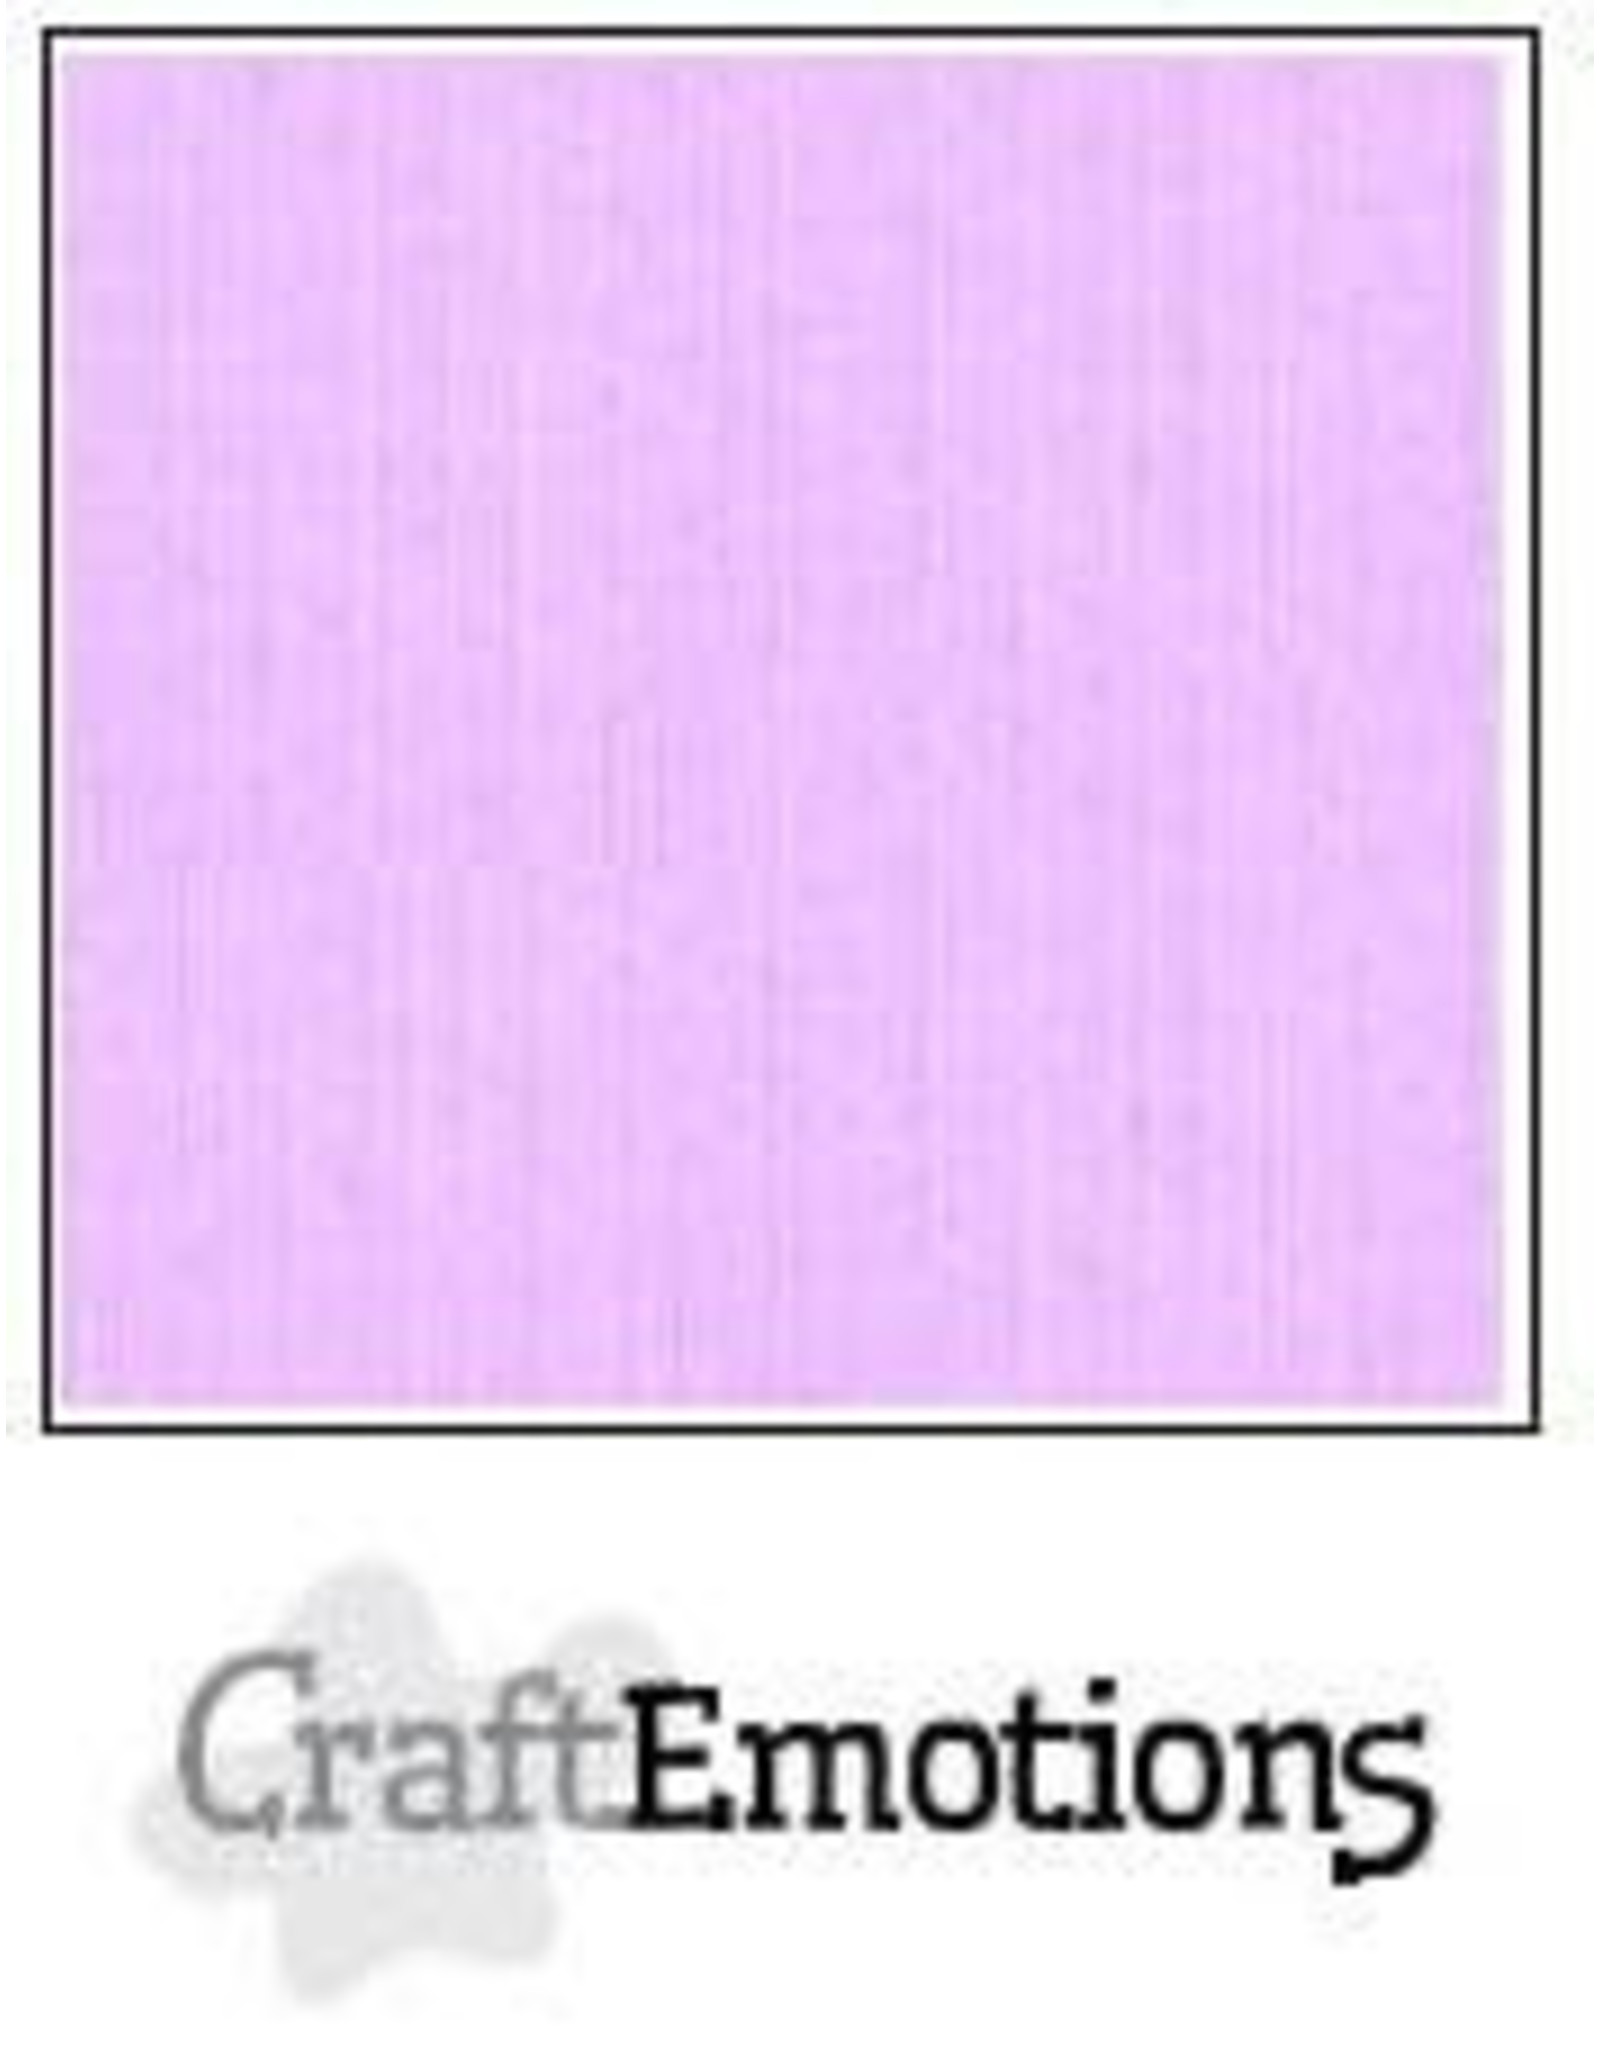 Craft Emotions CraftEmotions linnenkarton eucalyptus-pastel 30,0x30,0cm